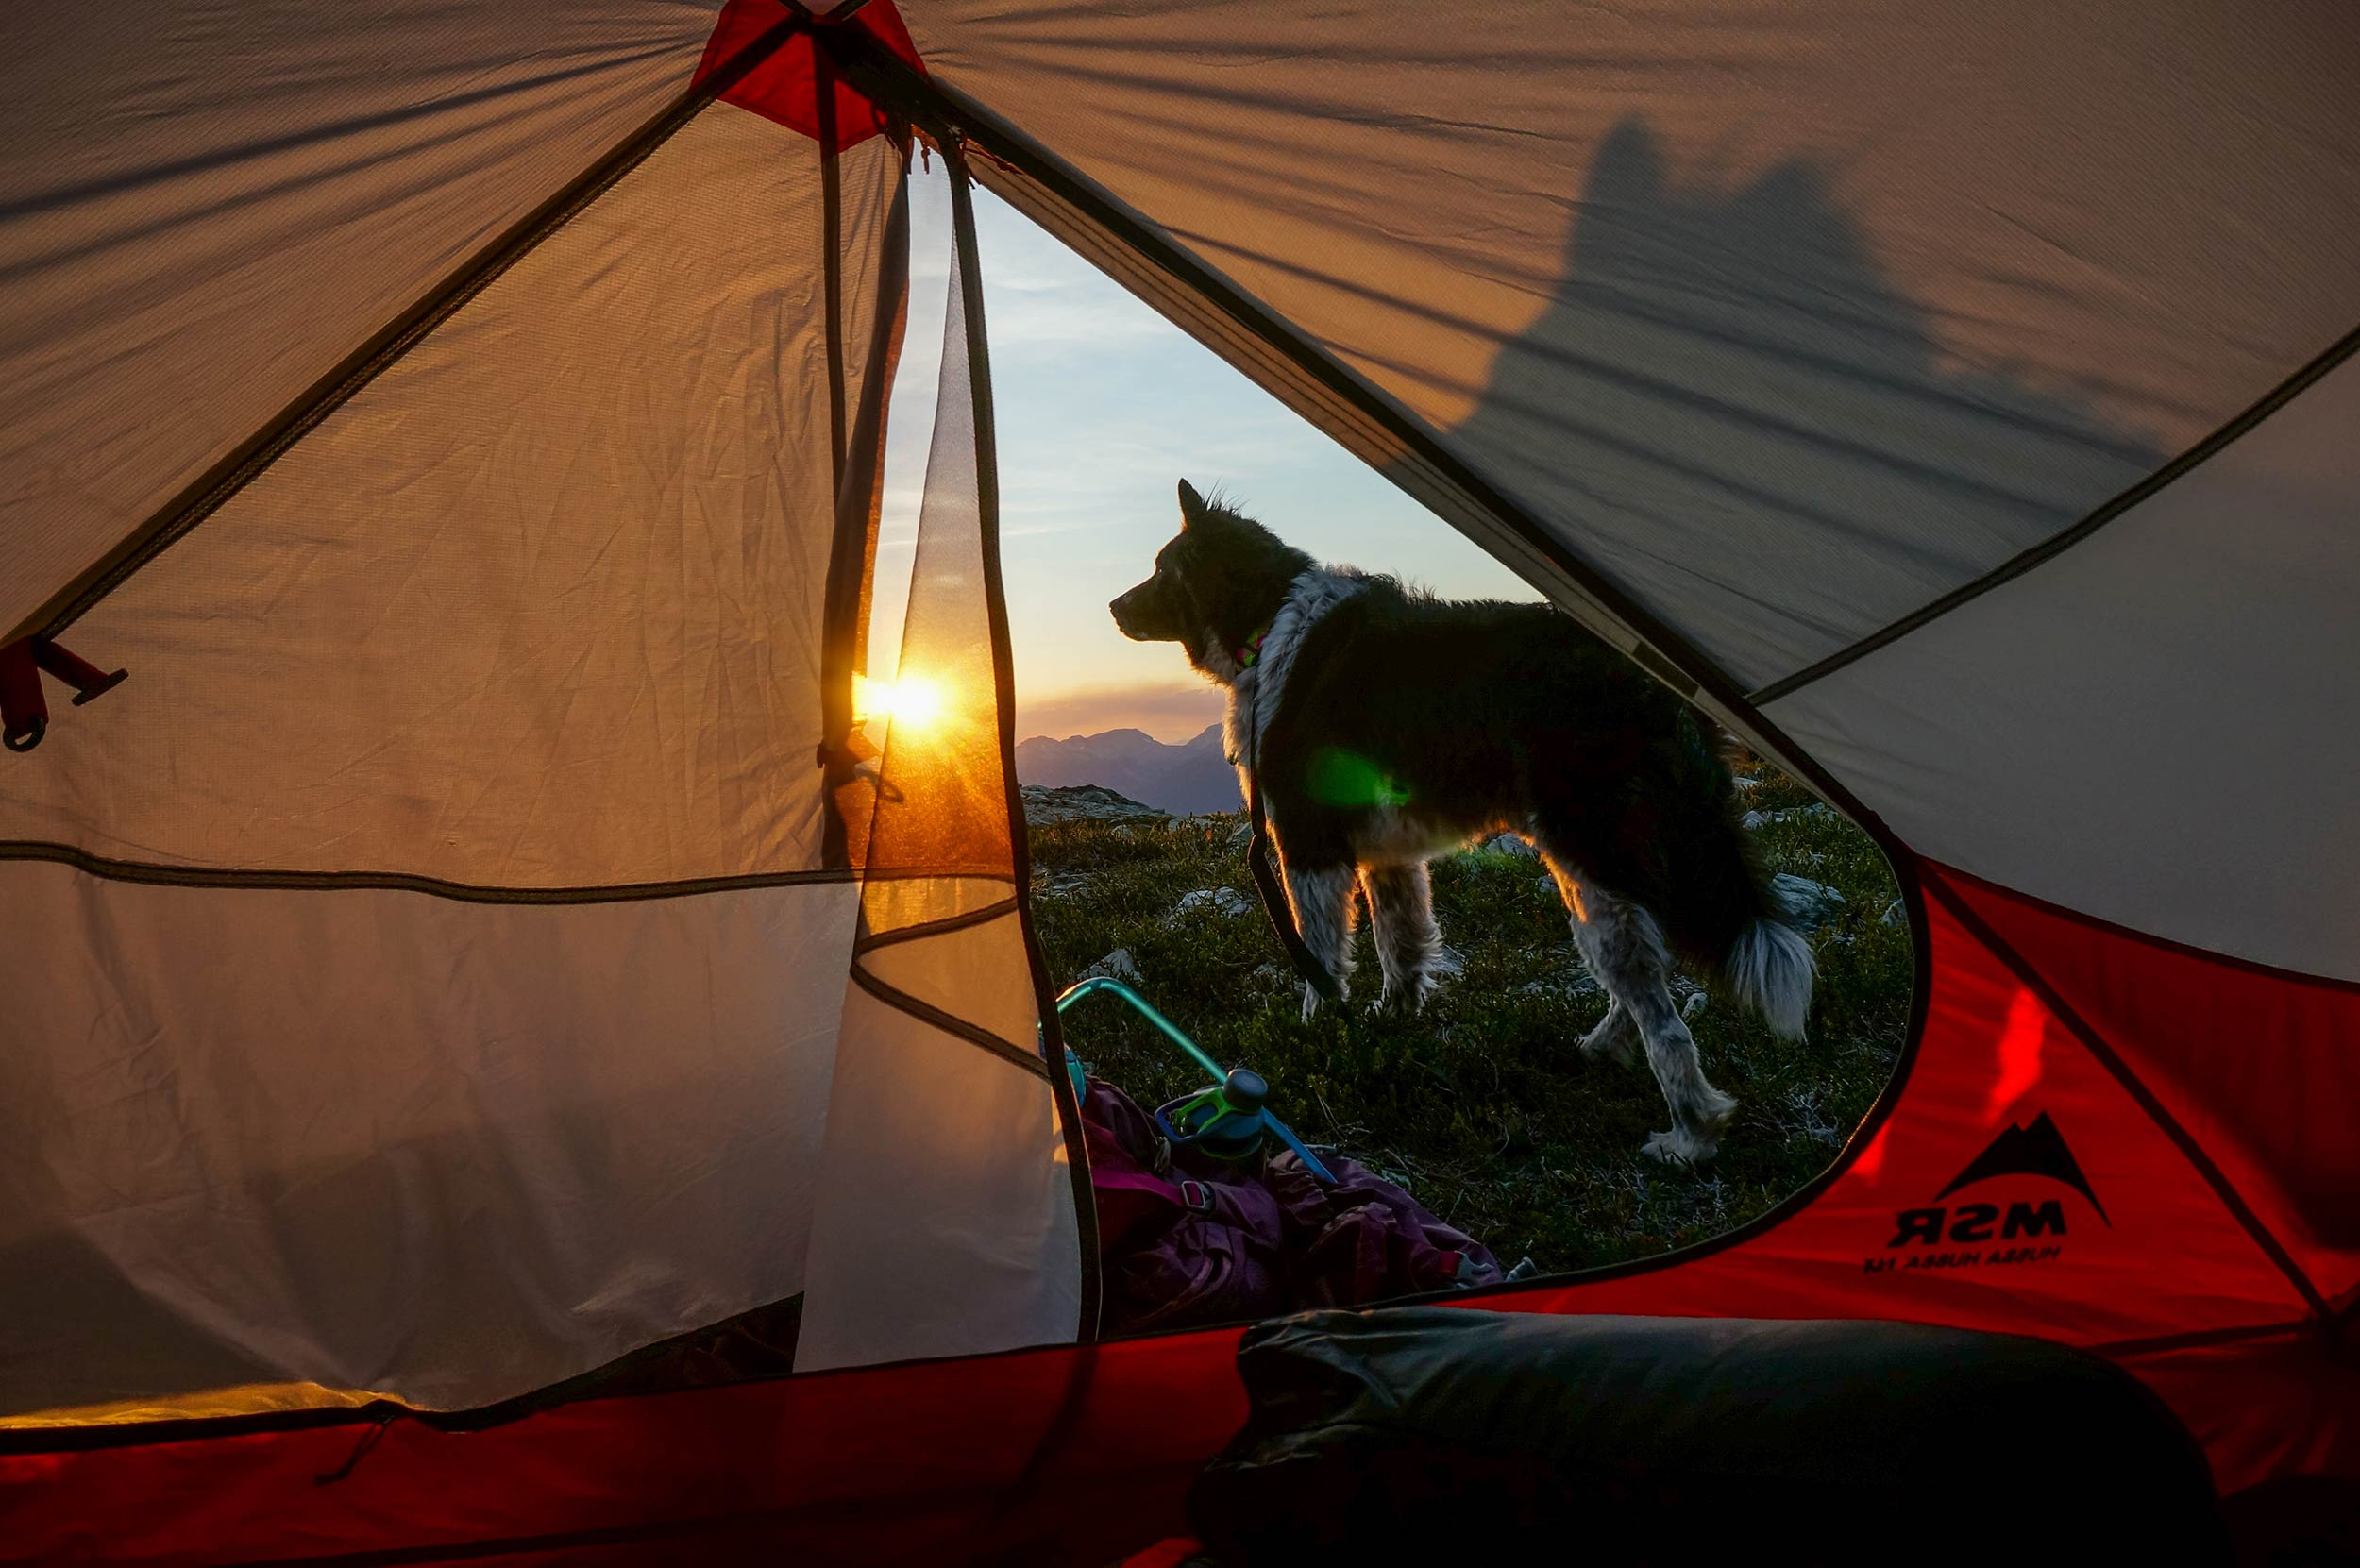 sproatt_alpine_trail_nugget_msr_tent_sunset.jpg